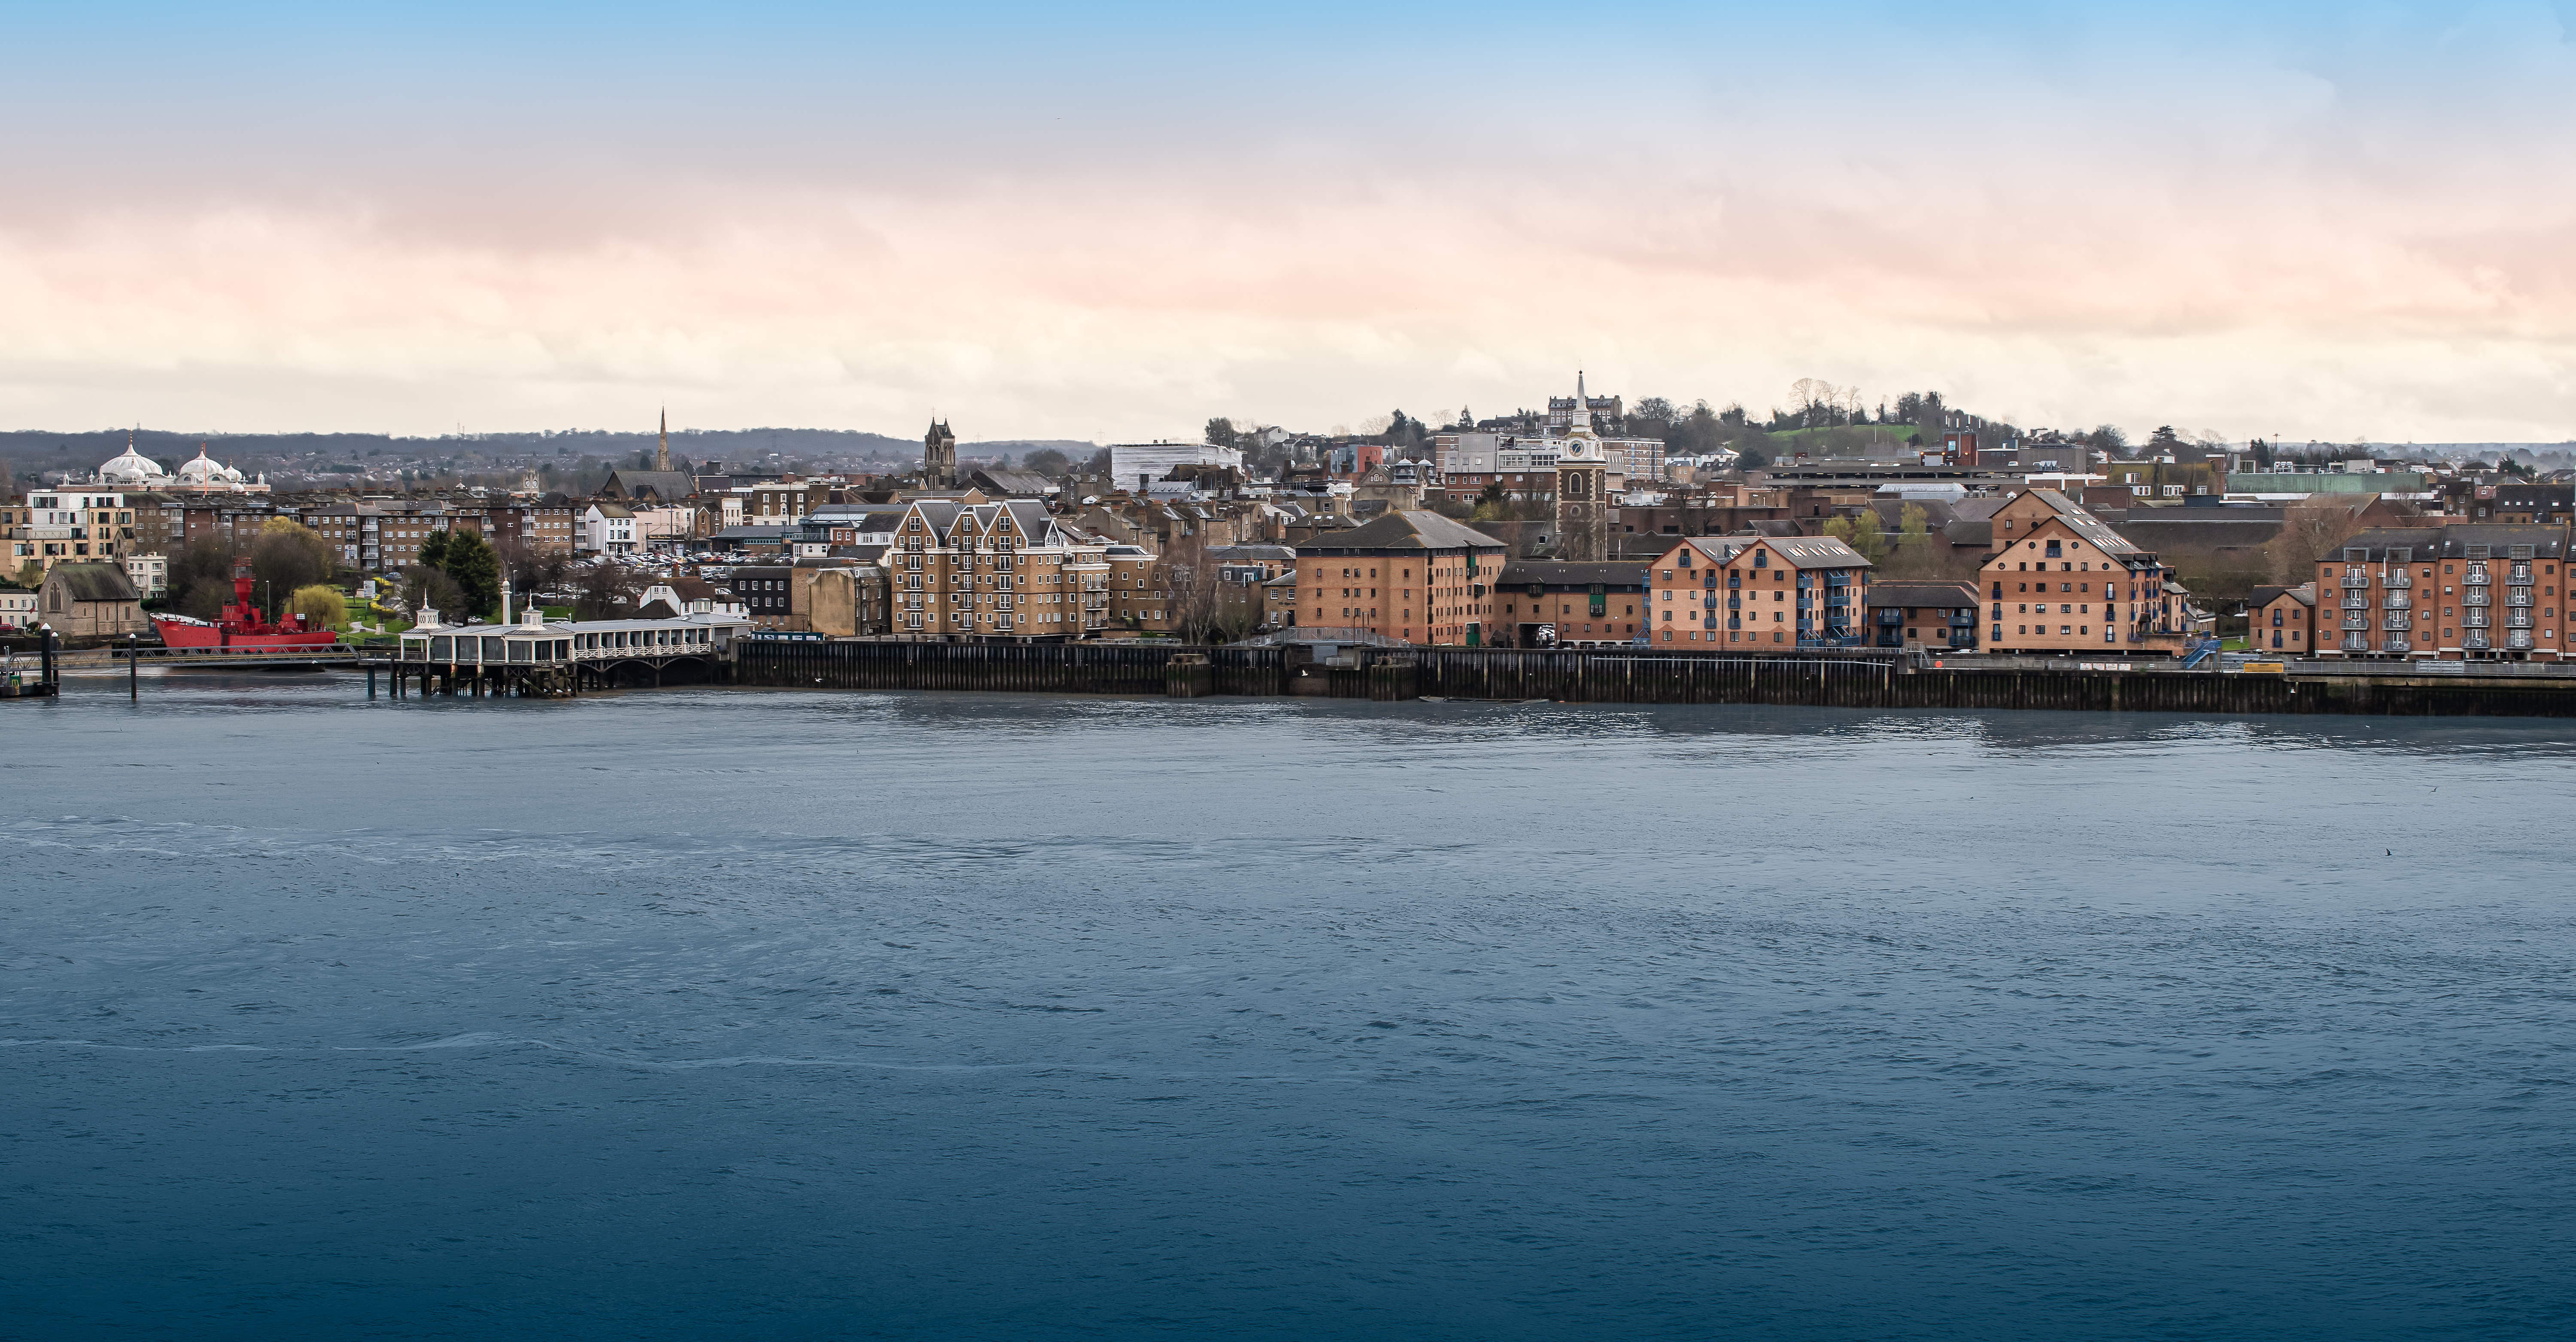 Panoramic view of Gravesend and the Thames river, England, UK